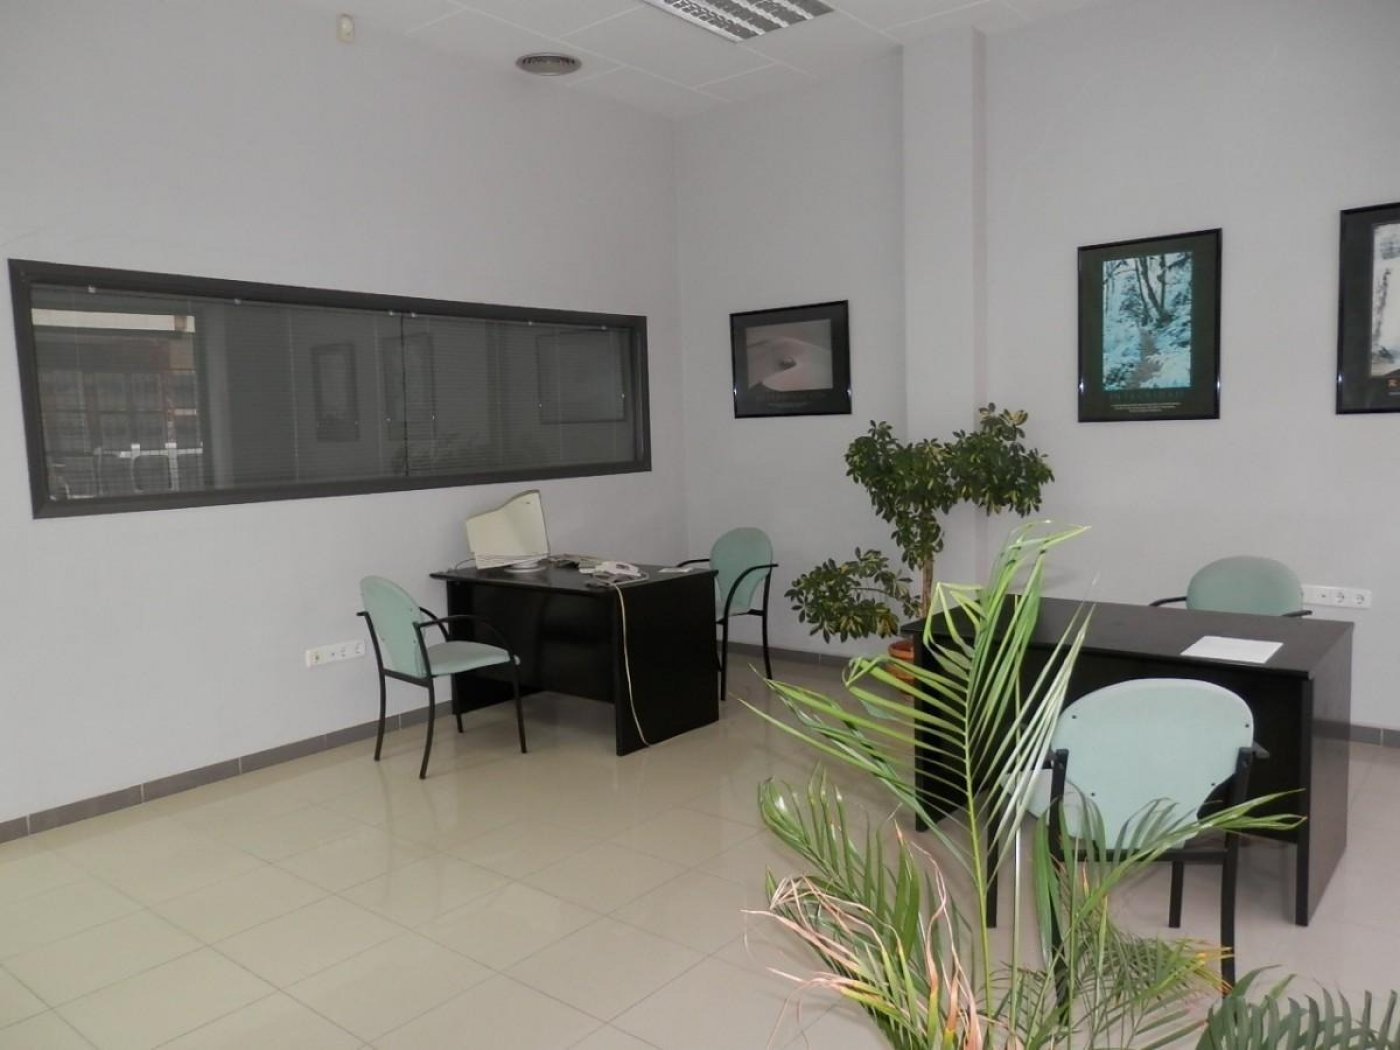 local-commerciel en calpe · centro 175000€